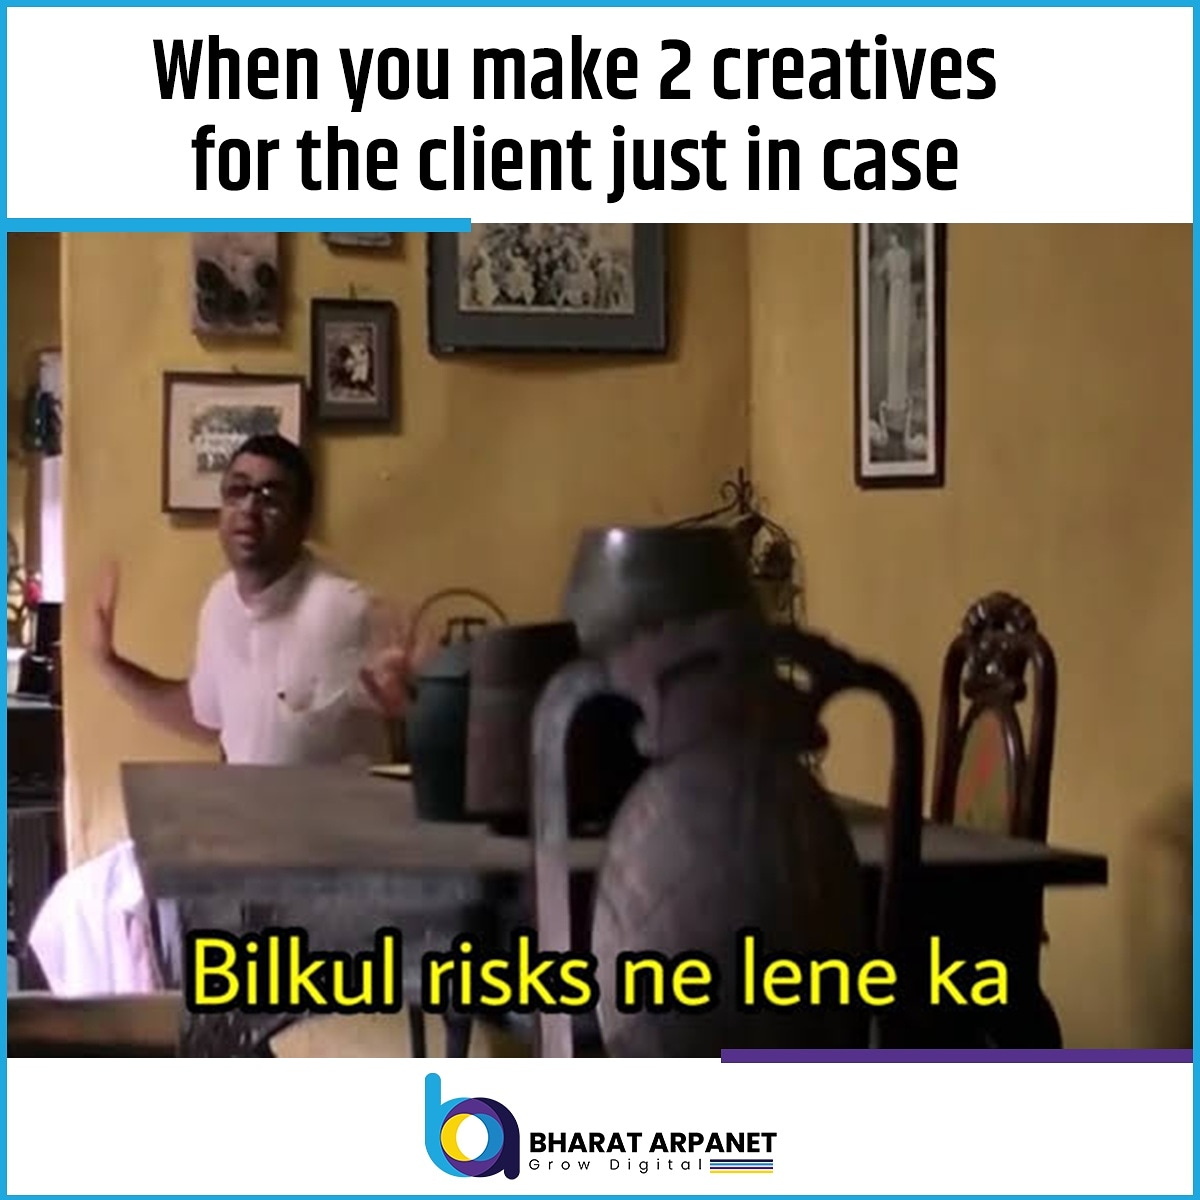 What is your client story? Tell us in the comments  #agencylife #marketingagency #digitallife #digitalbranding #clientstory #BharatArpanet https://t.co/LhwiWGDqmf